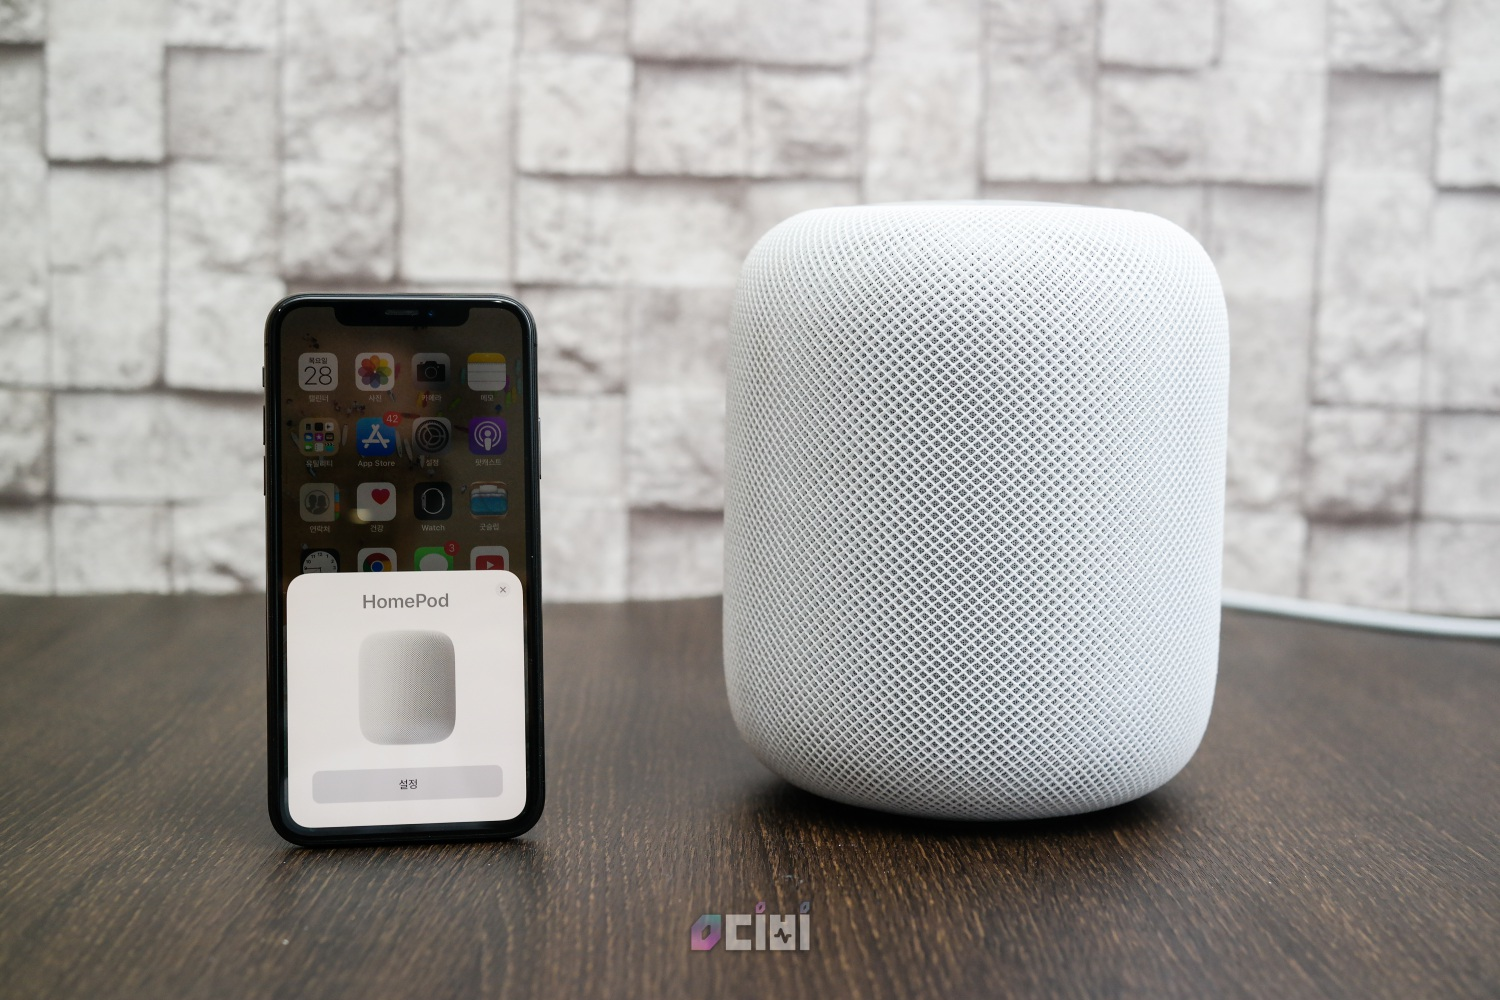 03 apple_homepod_0db_0014.jpg